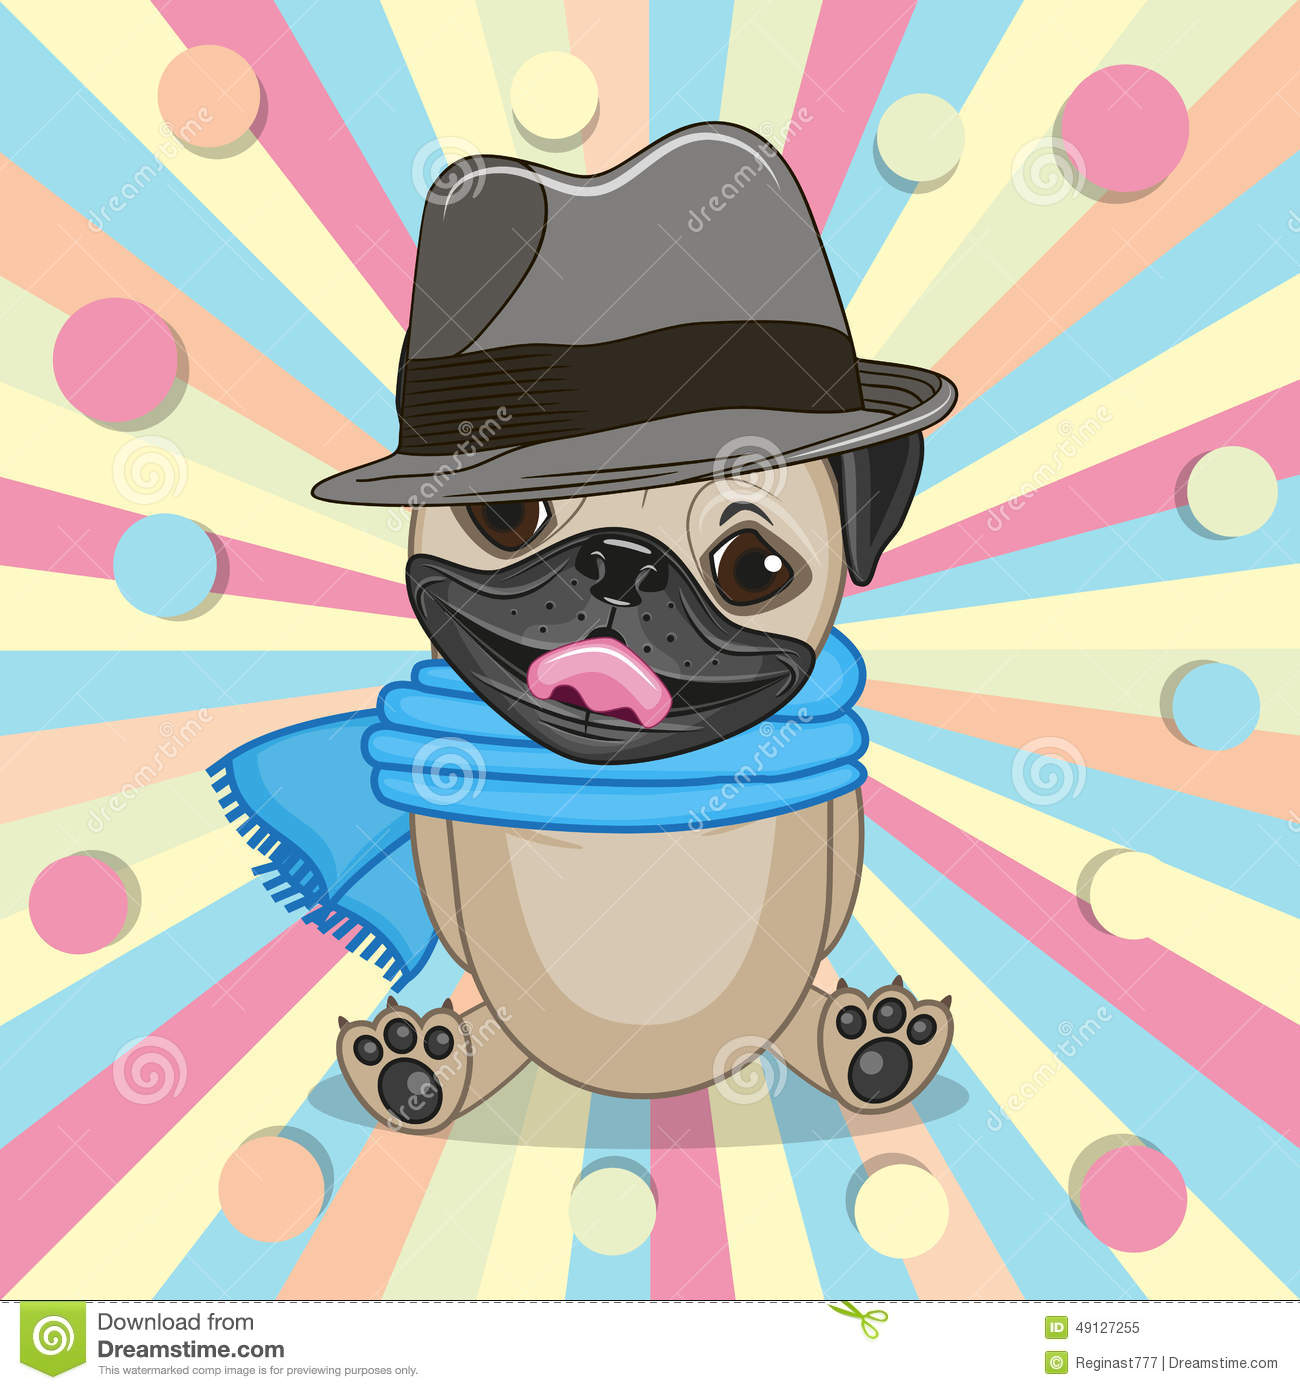 Pug Dog with hat stock vector. Illustration of drawing - 49127255 6007d3c0340